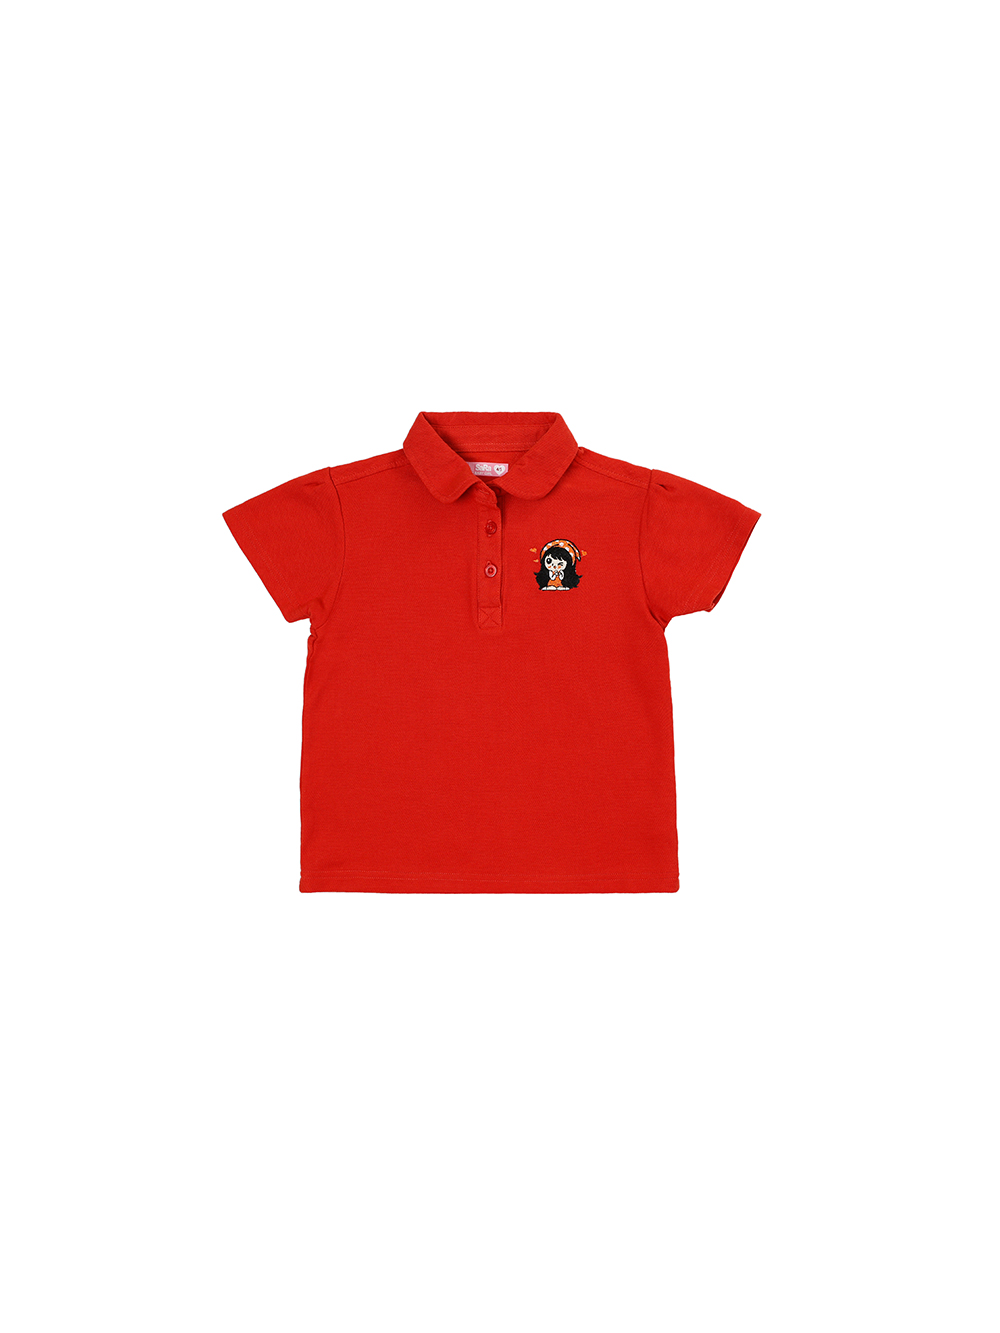 BABY GIRL'S POLO SHIRT